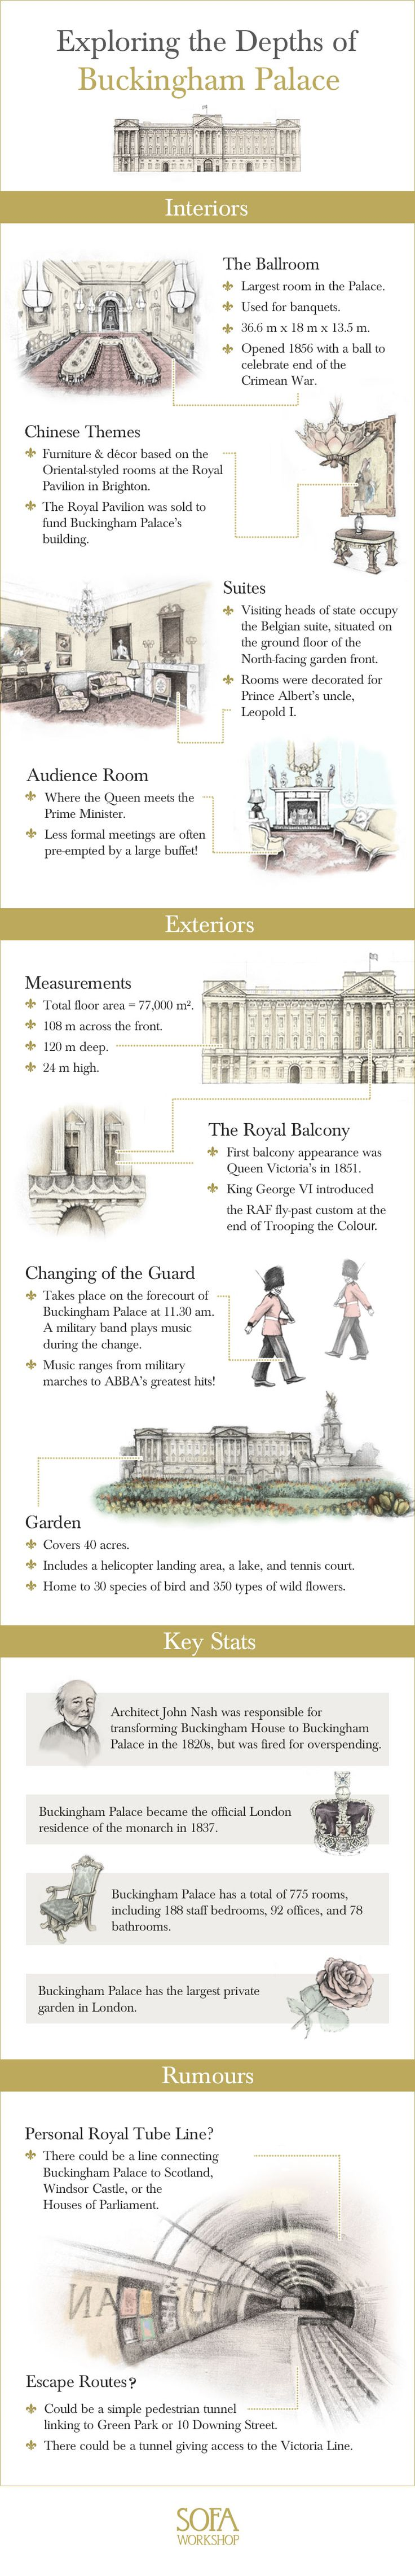 Exploring the Depths of Buckingham Palace #Infographic #InteriorDesign